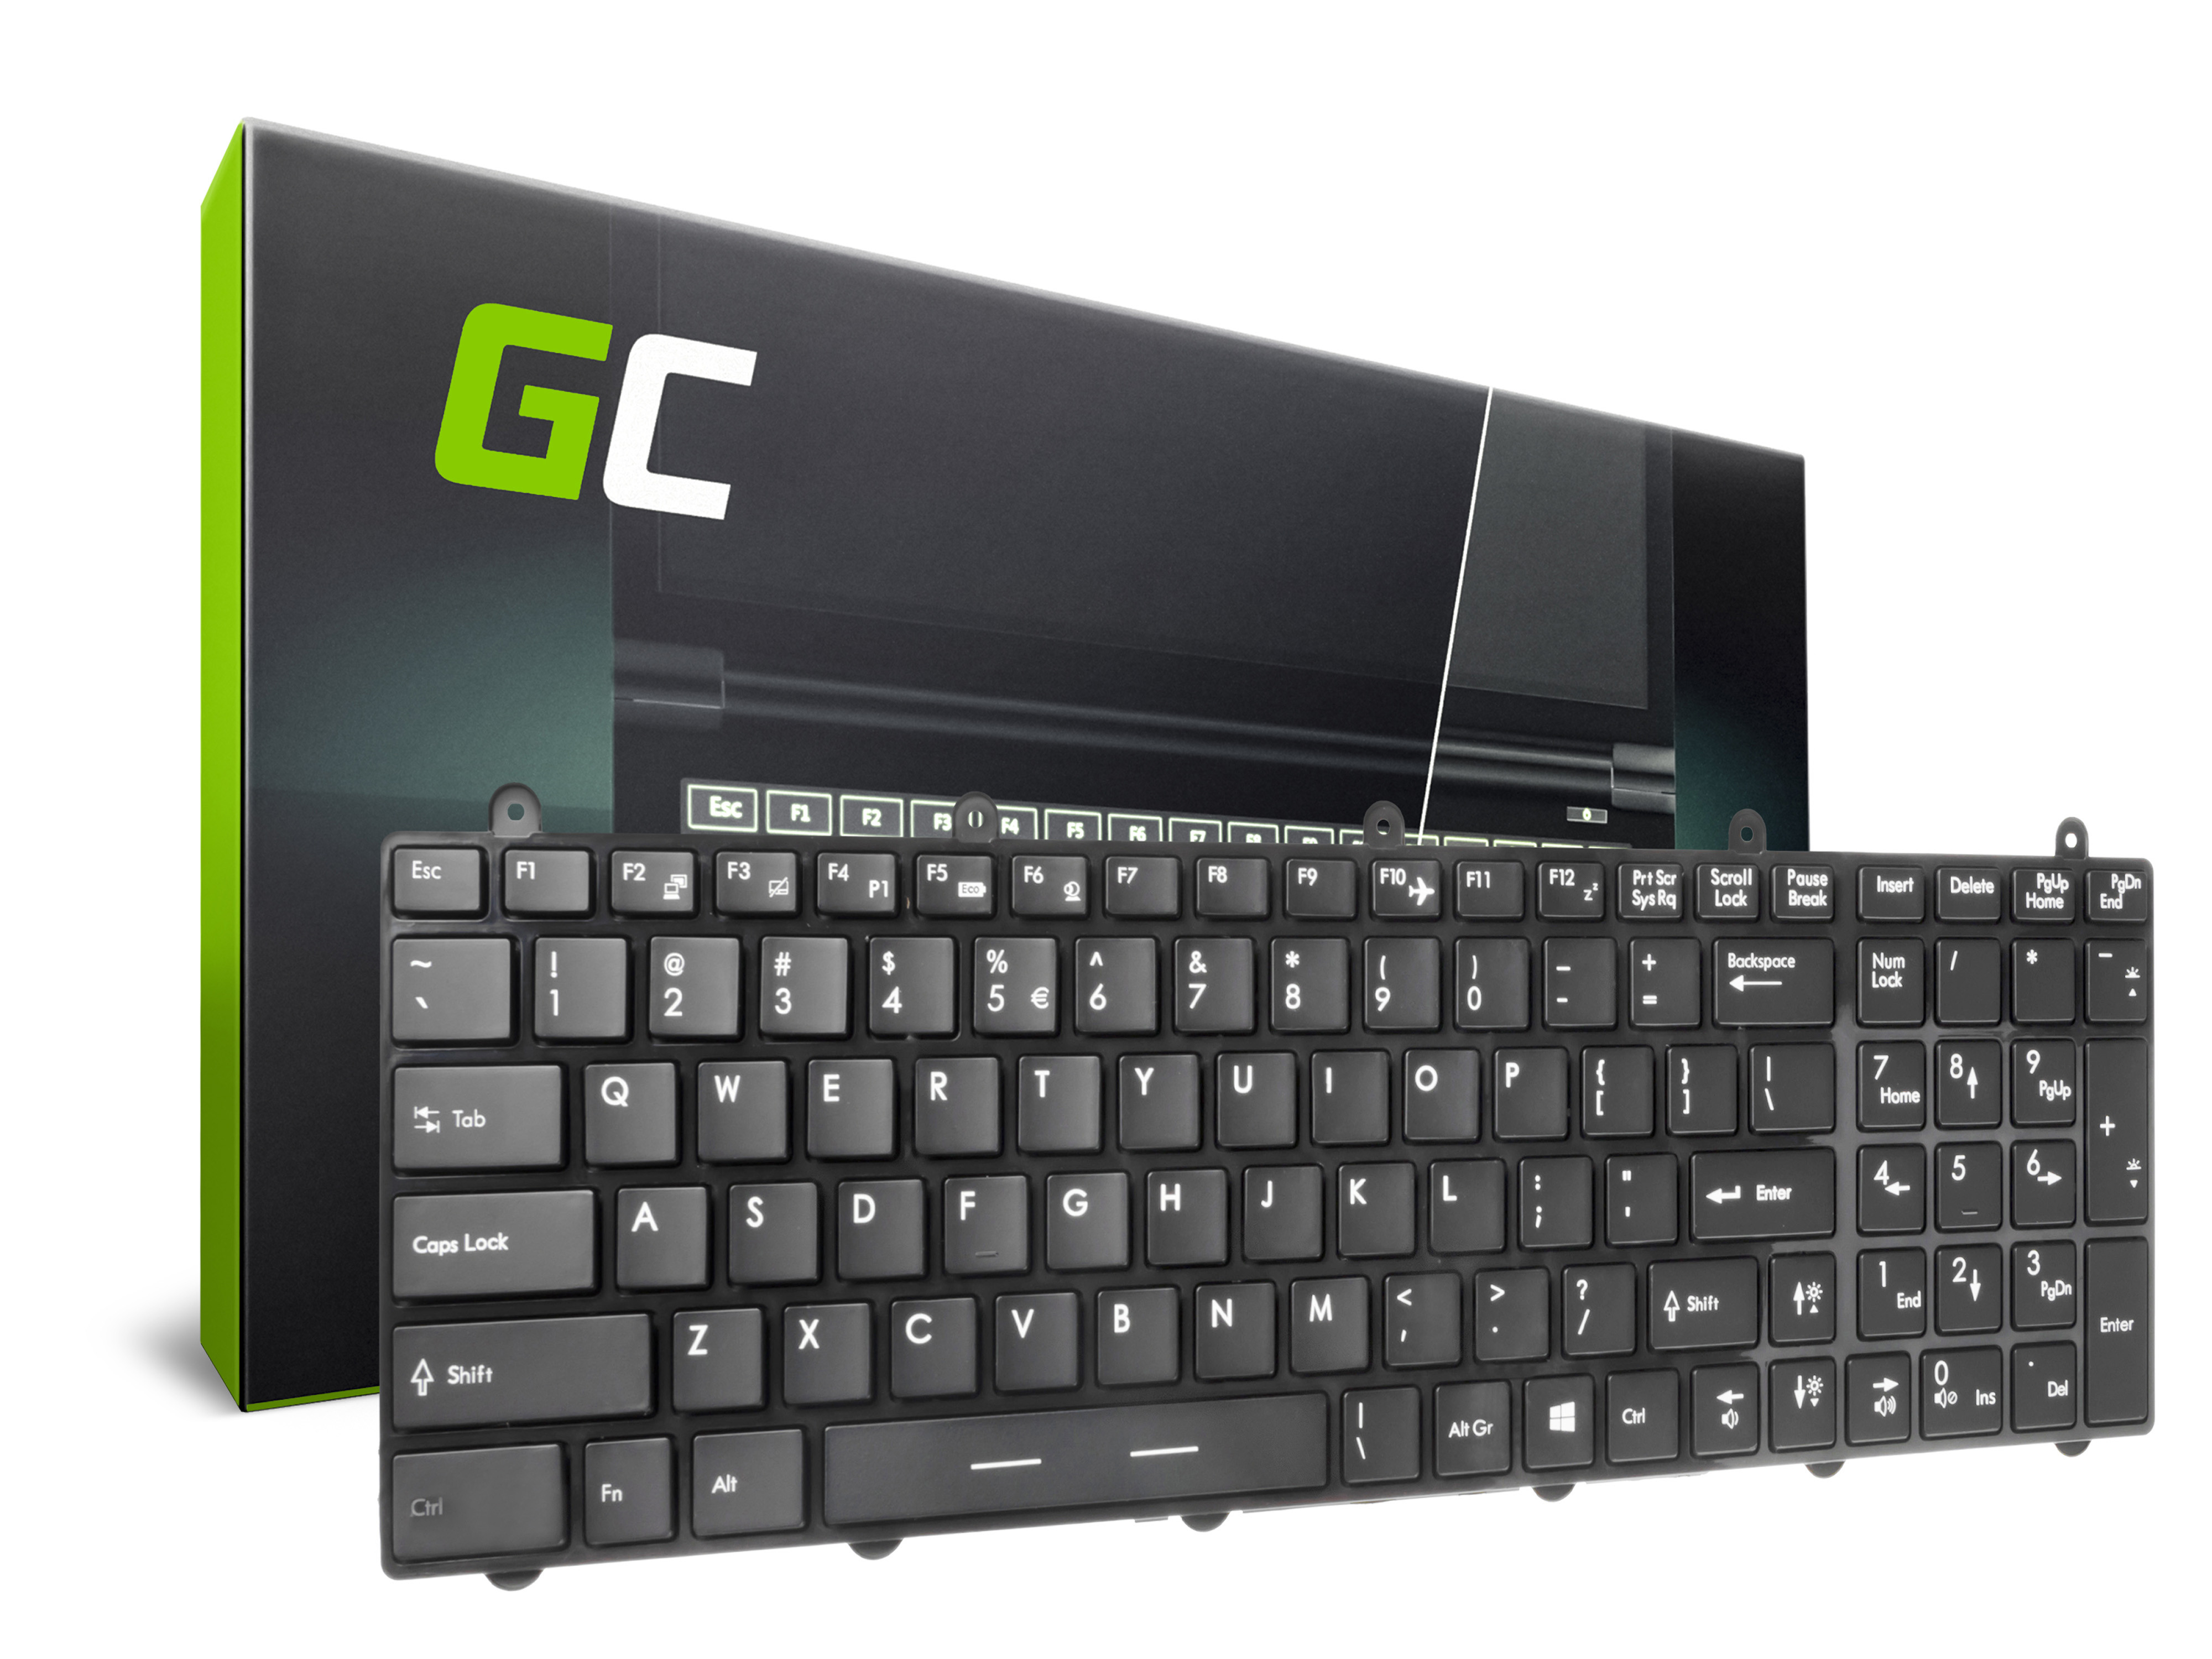 Green Cell Klávesnice pro notebook MSI GE60 GE70 GP60 GP70 GT60 GT70 GT660 GT680 GT683 GT780 GT783 GX70 GX660 s rámečkem